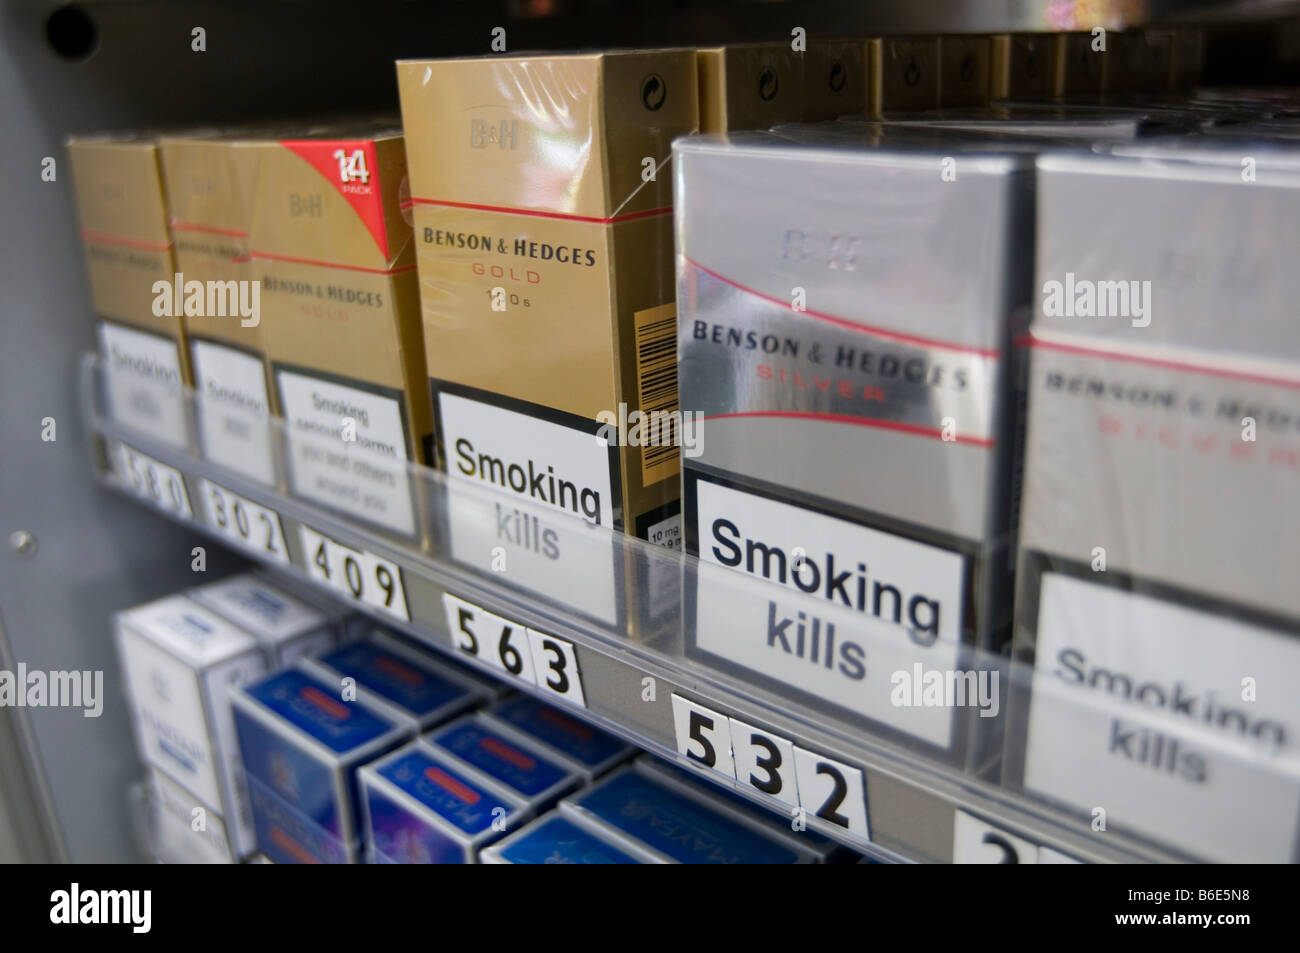 How much do Marlboro Golds cost